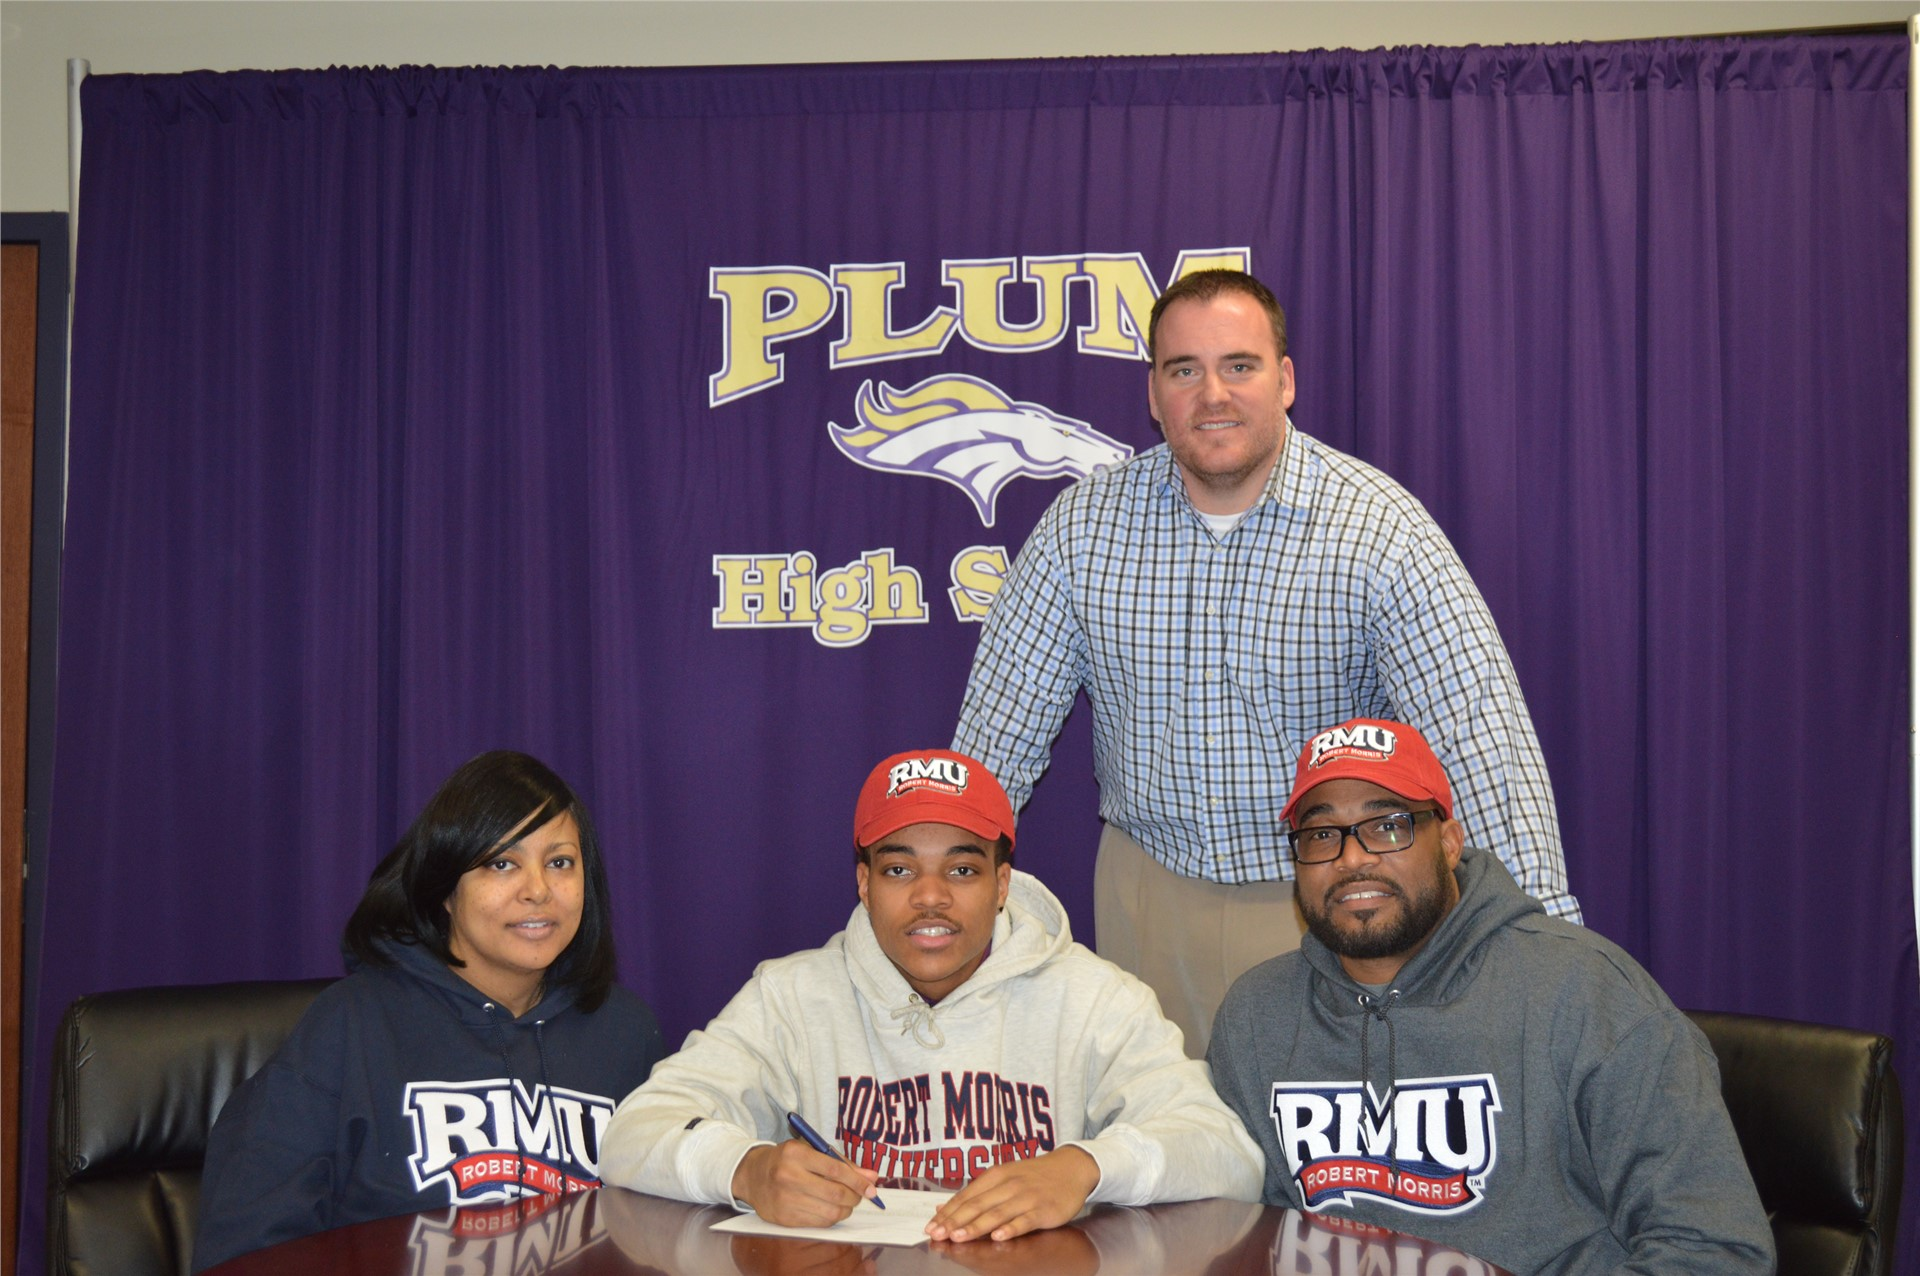 Kevin Brown commited to play football at Robert Morris